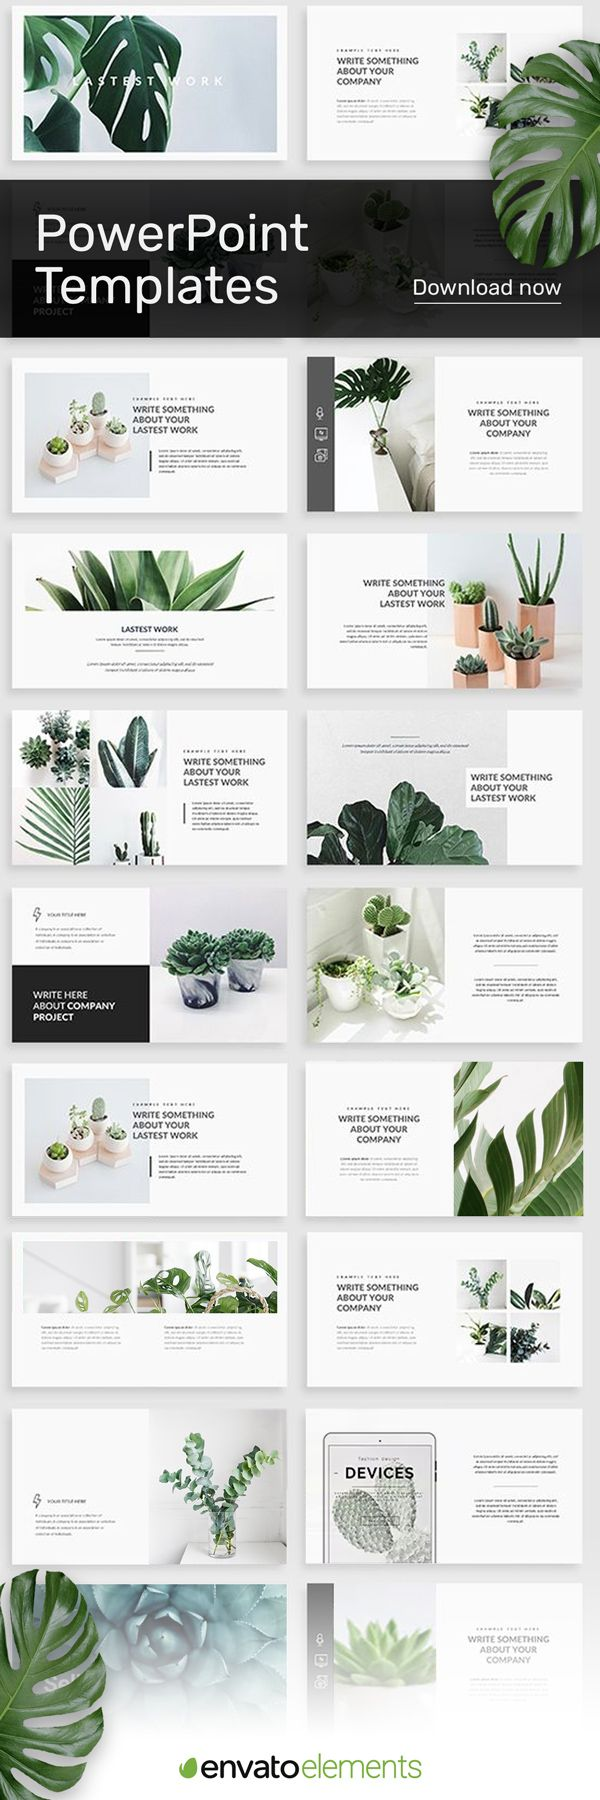 Unlimited Downloads of 2018 Best PowerPoint Designs